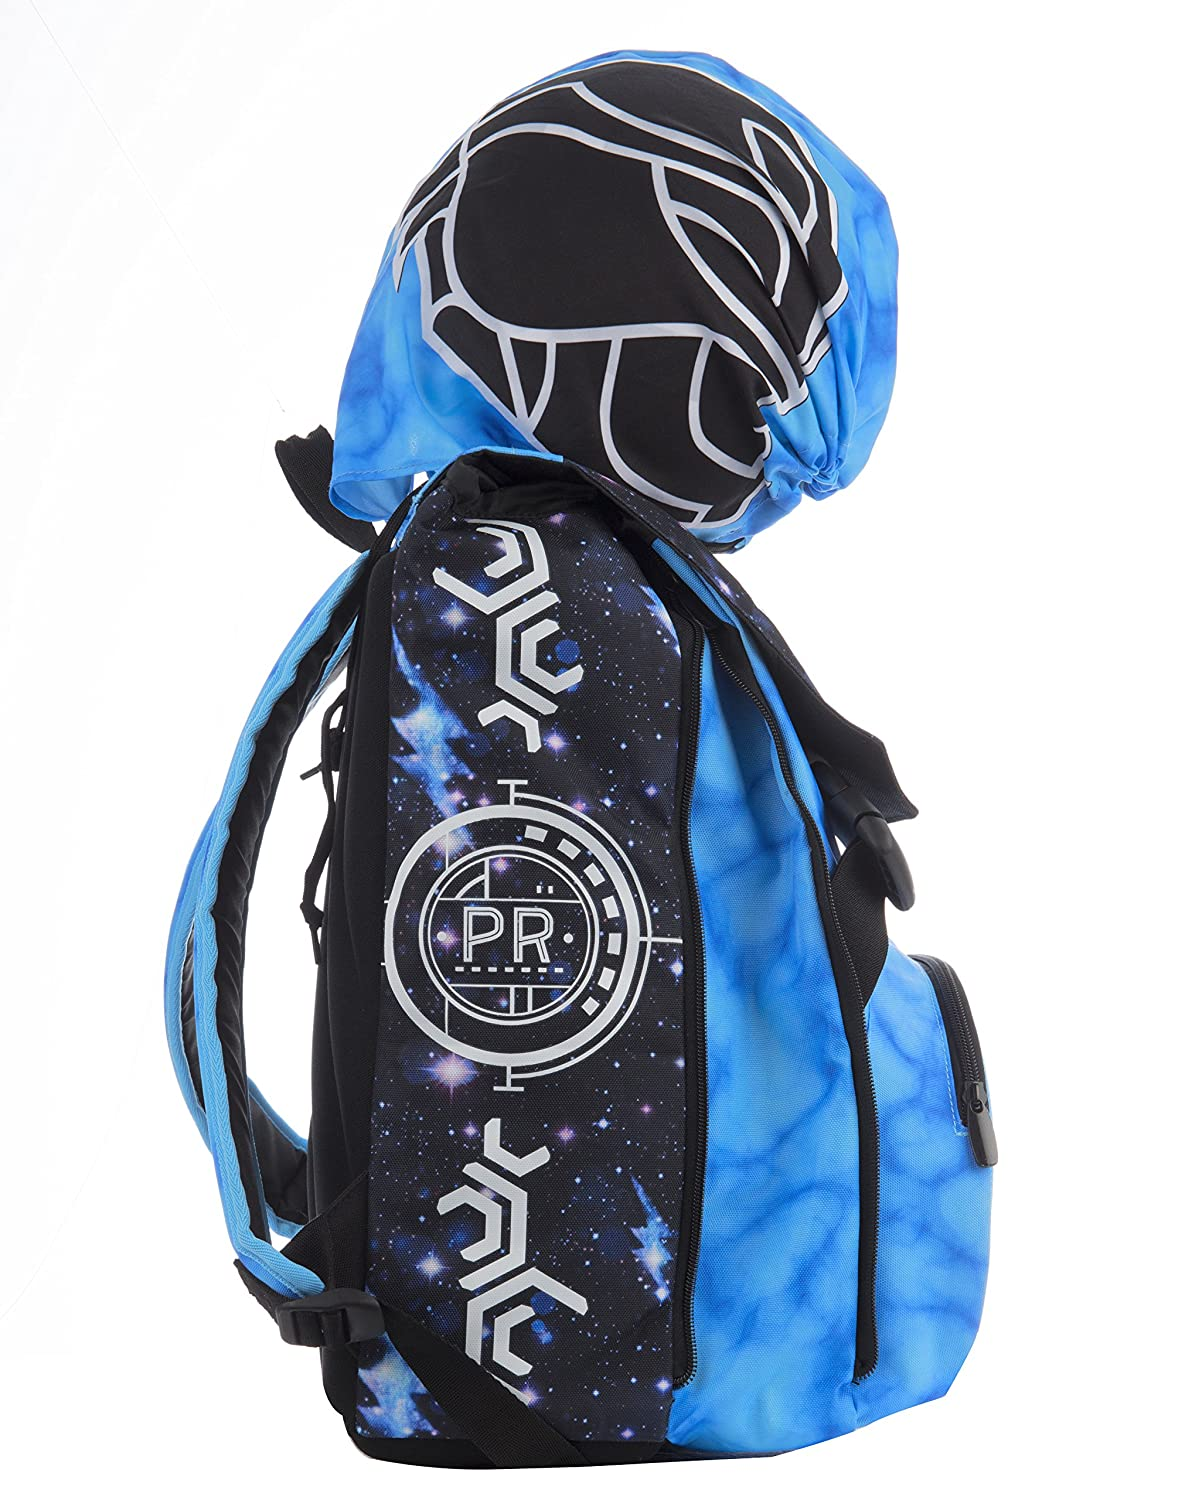 Mochila Extensible - Power Rangers - Cartera Escolar Azul Negro 31Lt: Amazon.es: Equipaje